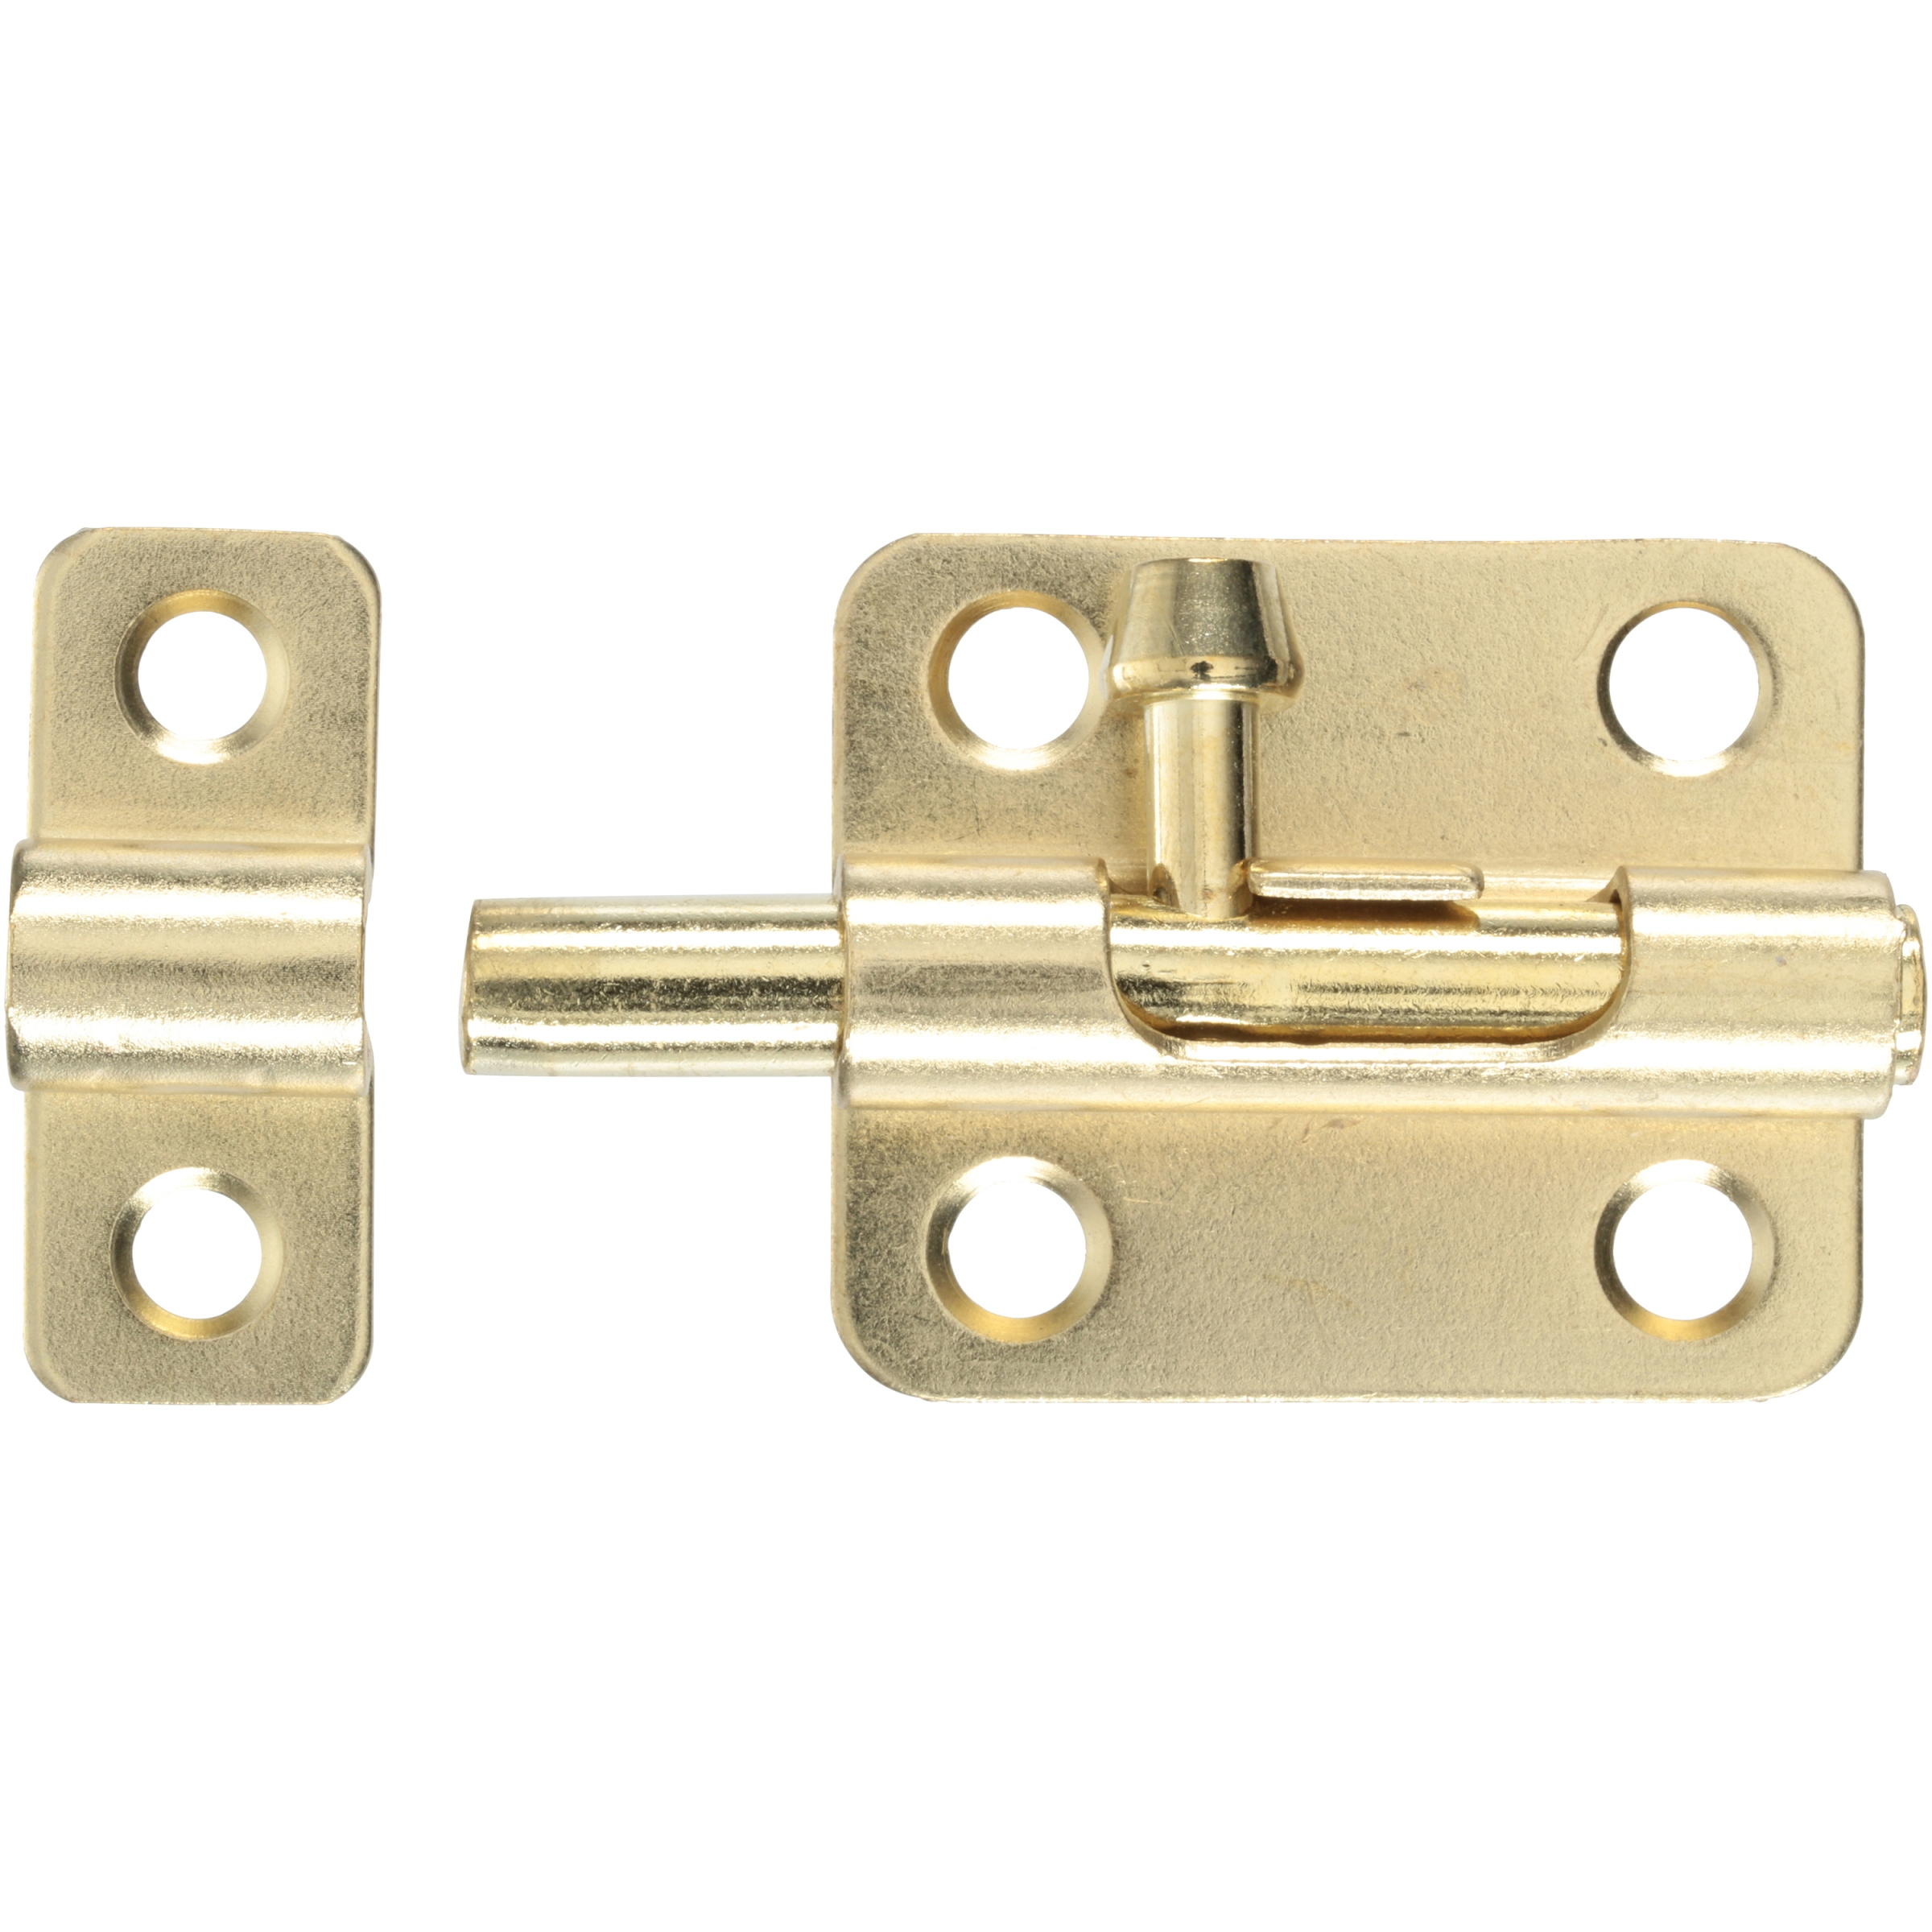 Bulldog® Hardware Brass Plated Barrel Bolt Carded Pack